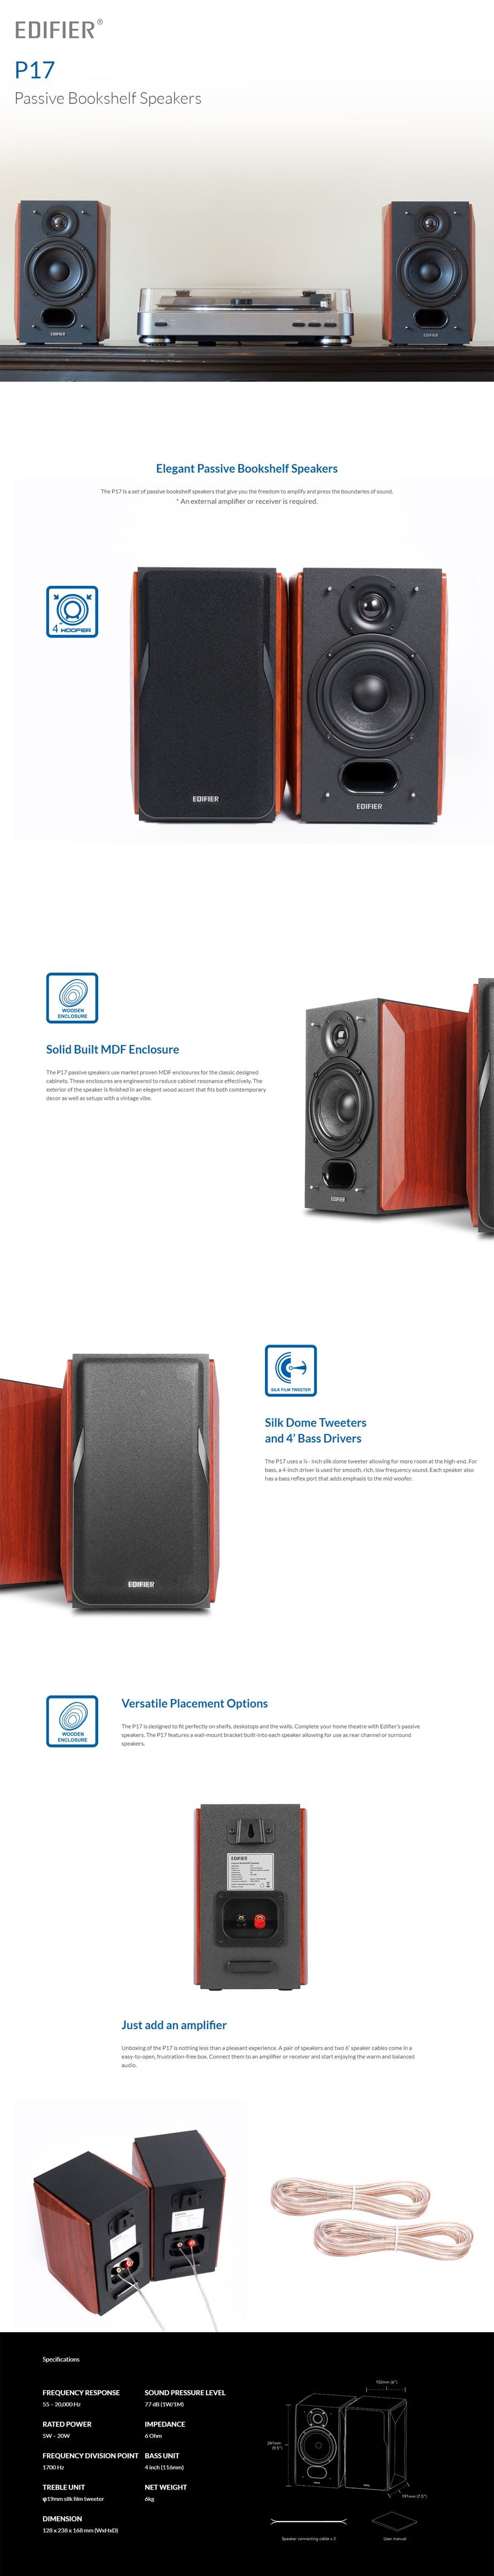 Edifier P17 Passive Bookshelf Speakers - Overview 1